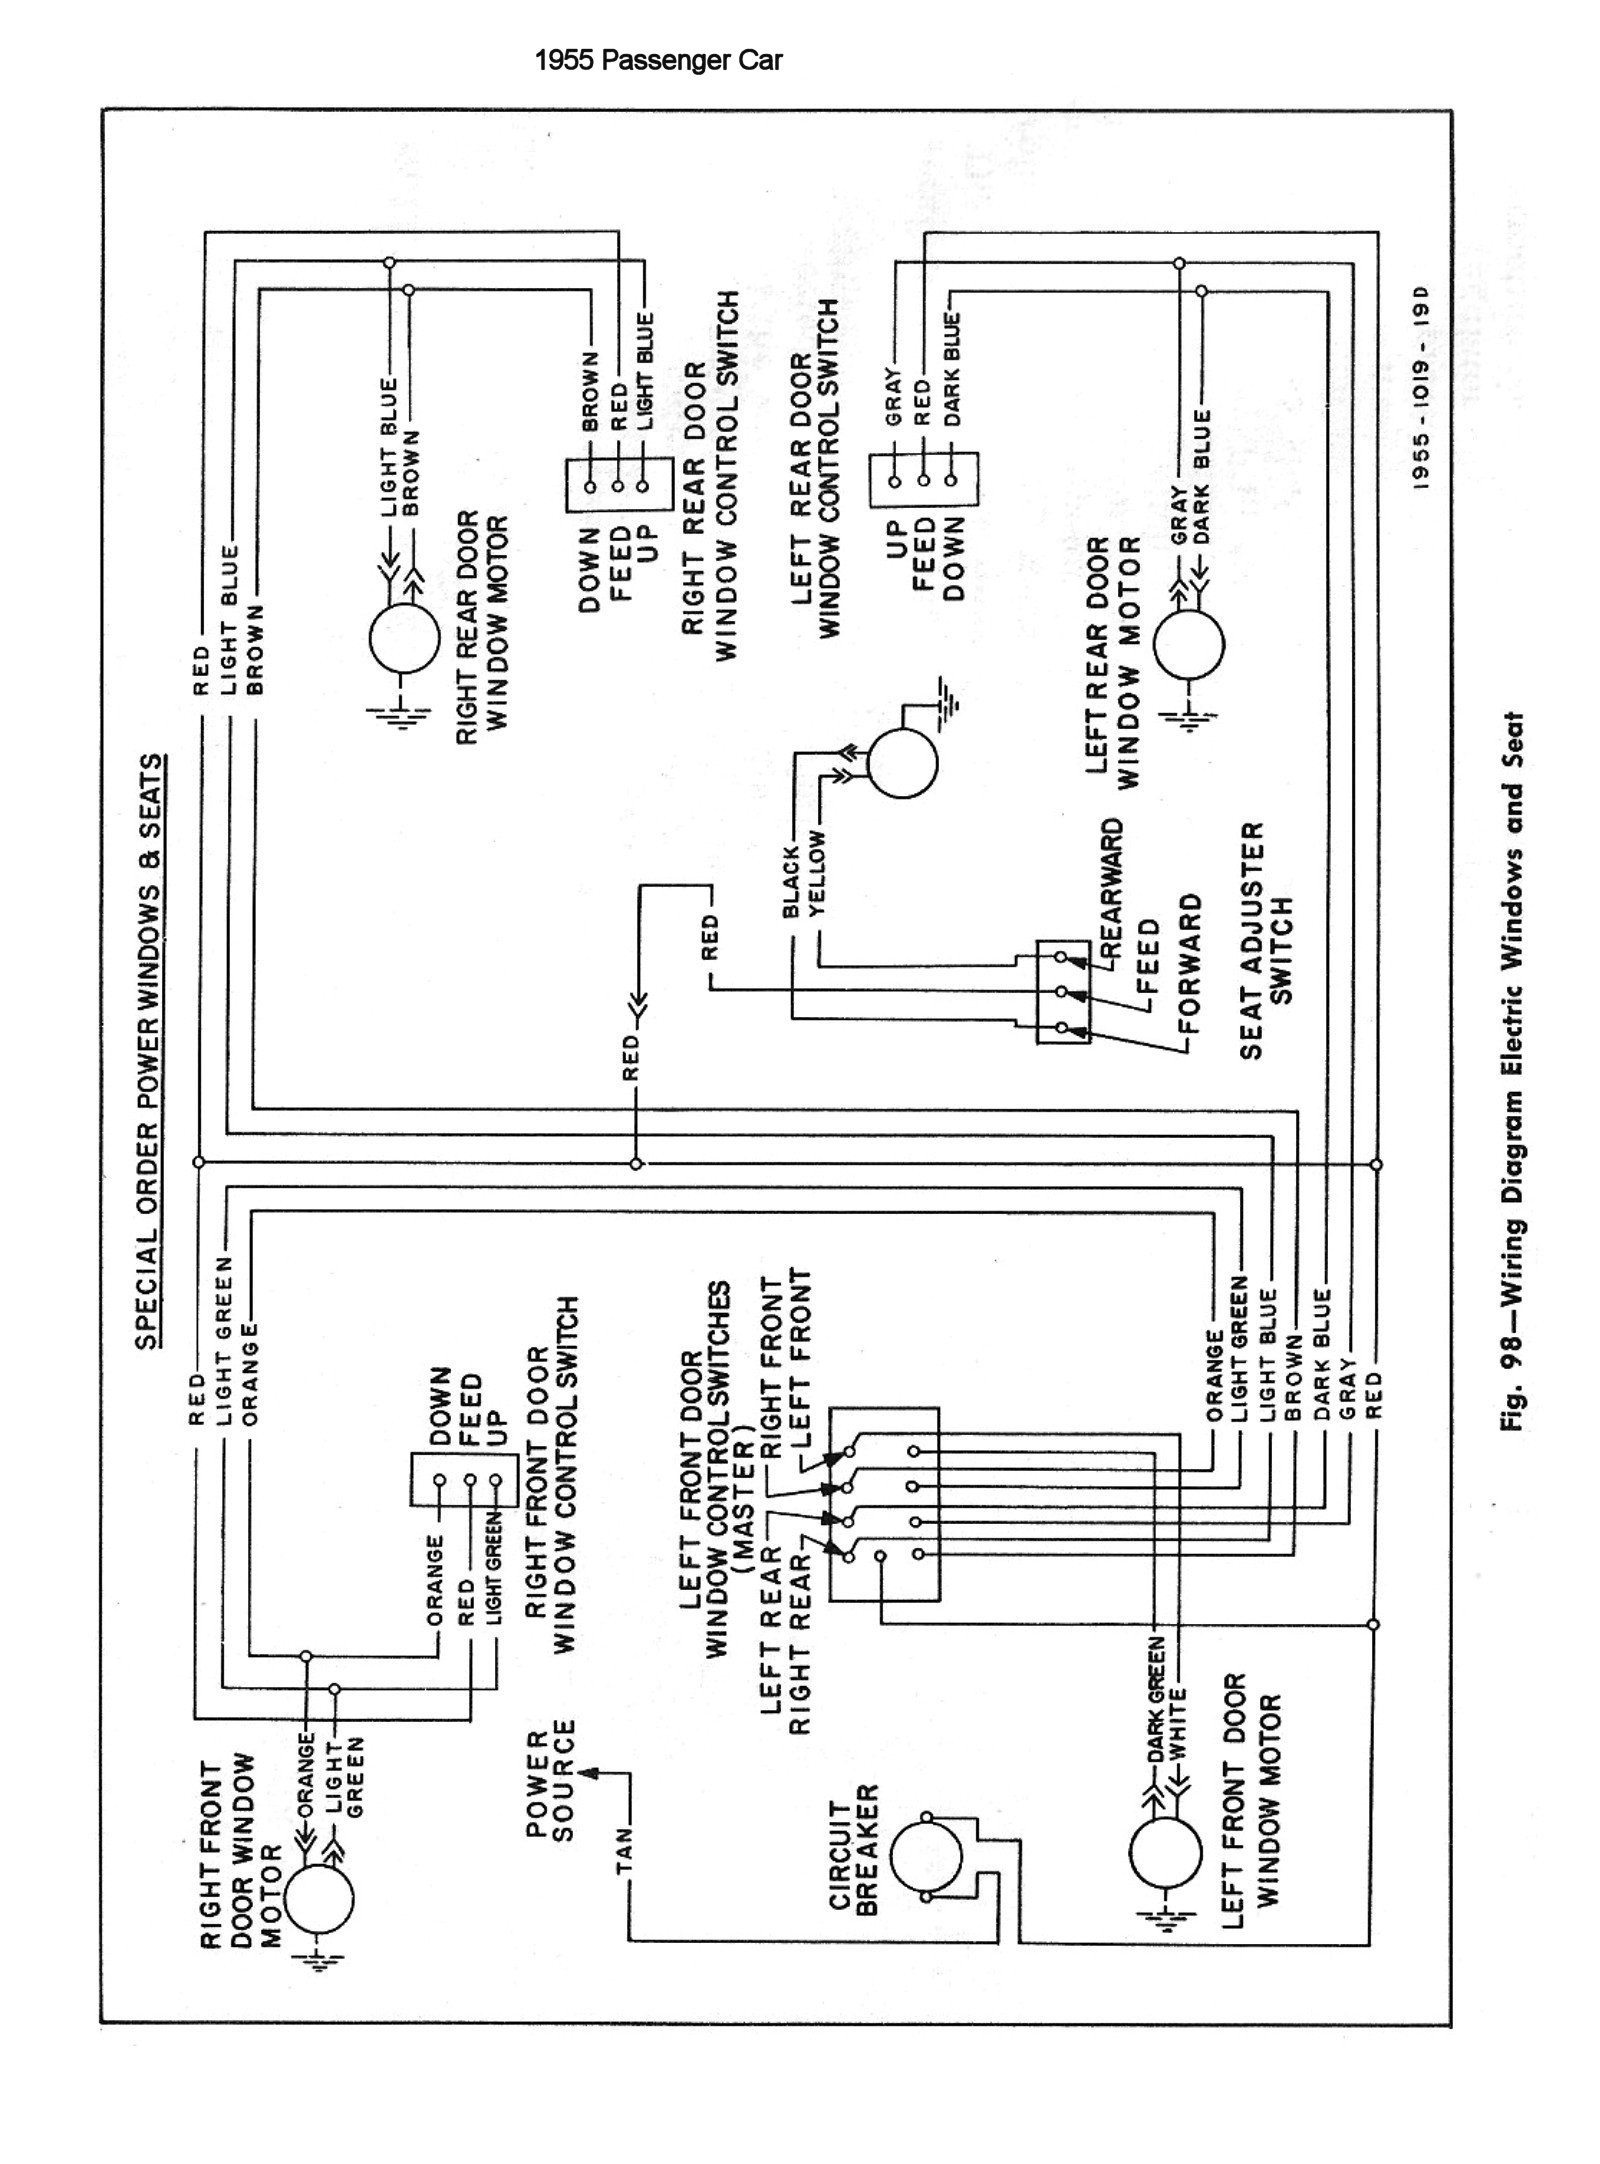 1984 chevy truck headlight wiring diagram cz 4789  diagram further 55 chevy ignition switch wiring diagram  chevy ignition switch wiring diagram